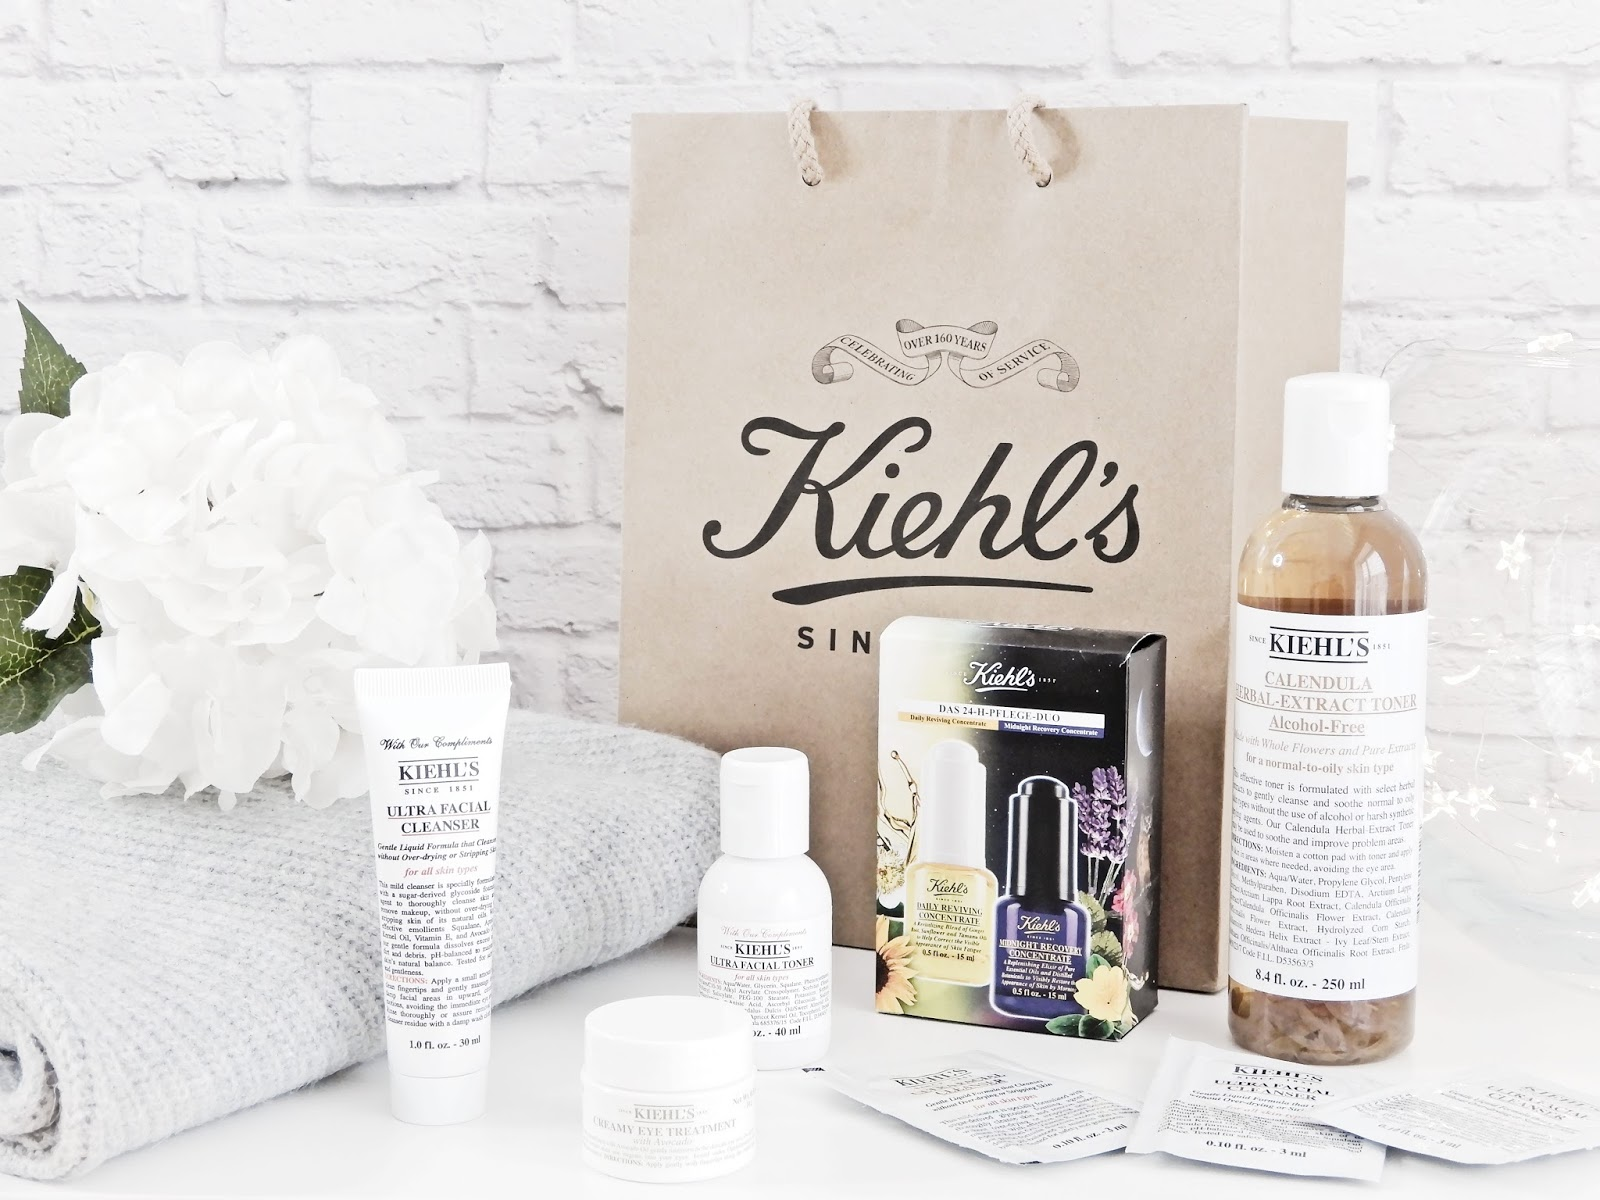 Kiehls serum na noc midnight recovery concentrate, Kiehls serum na dzień daily reviving concentrate, Kiehls krem pod oczy creamy eye treatment with avocado, Kiehls tonik calendula herbal extract alcohol-free toner, Kiehls ultra facial tonik i żel do mycia twarzy,